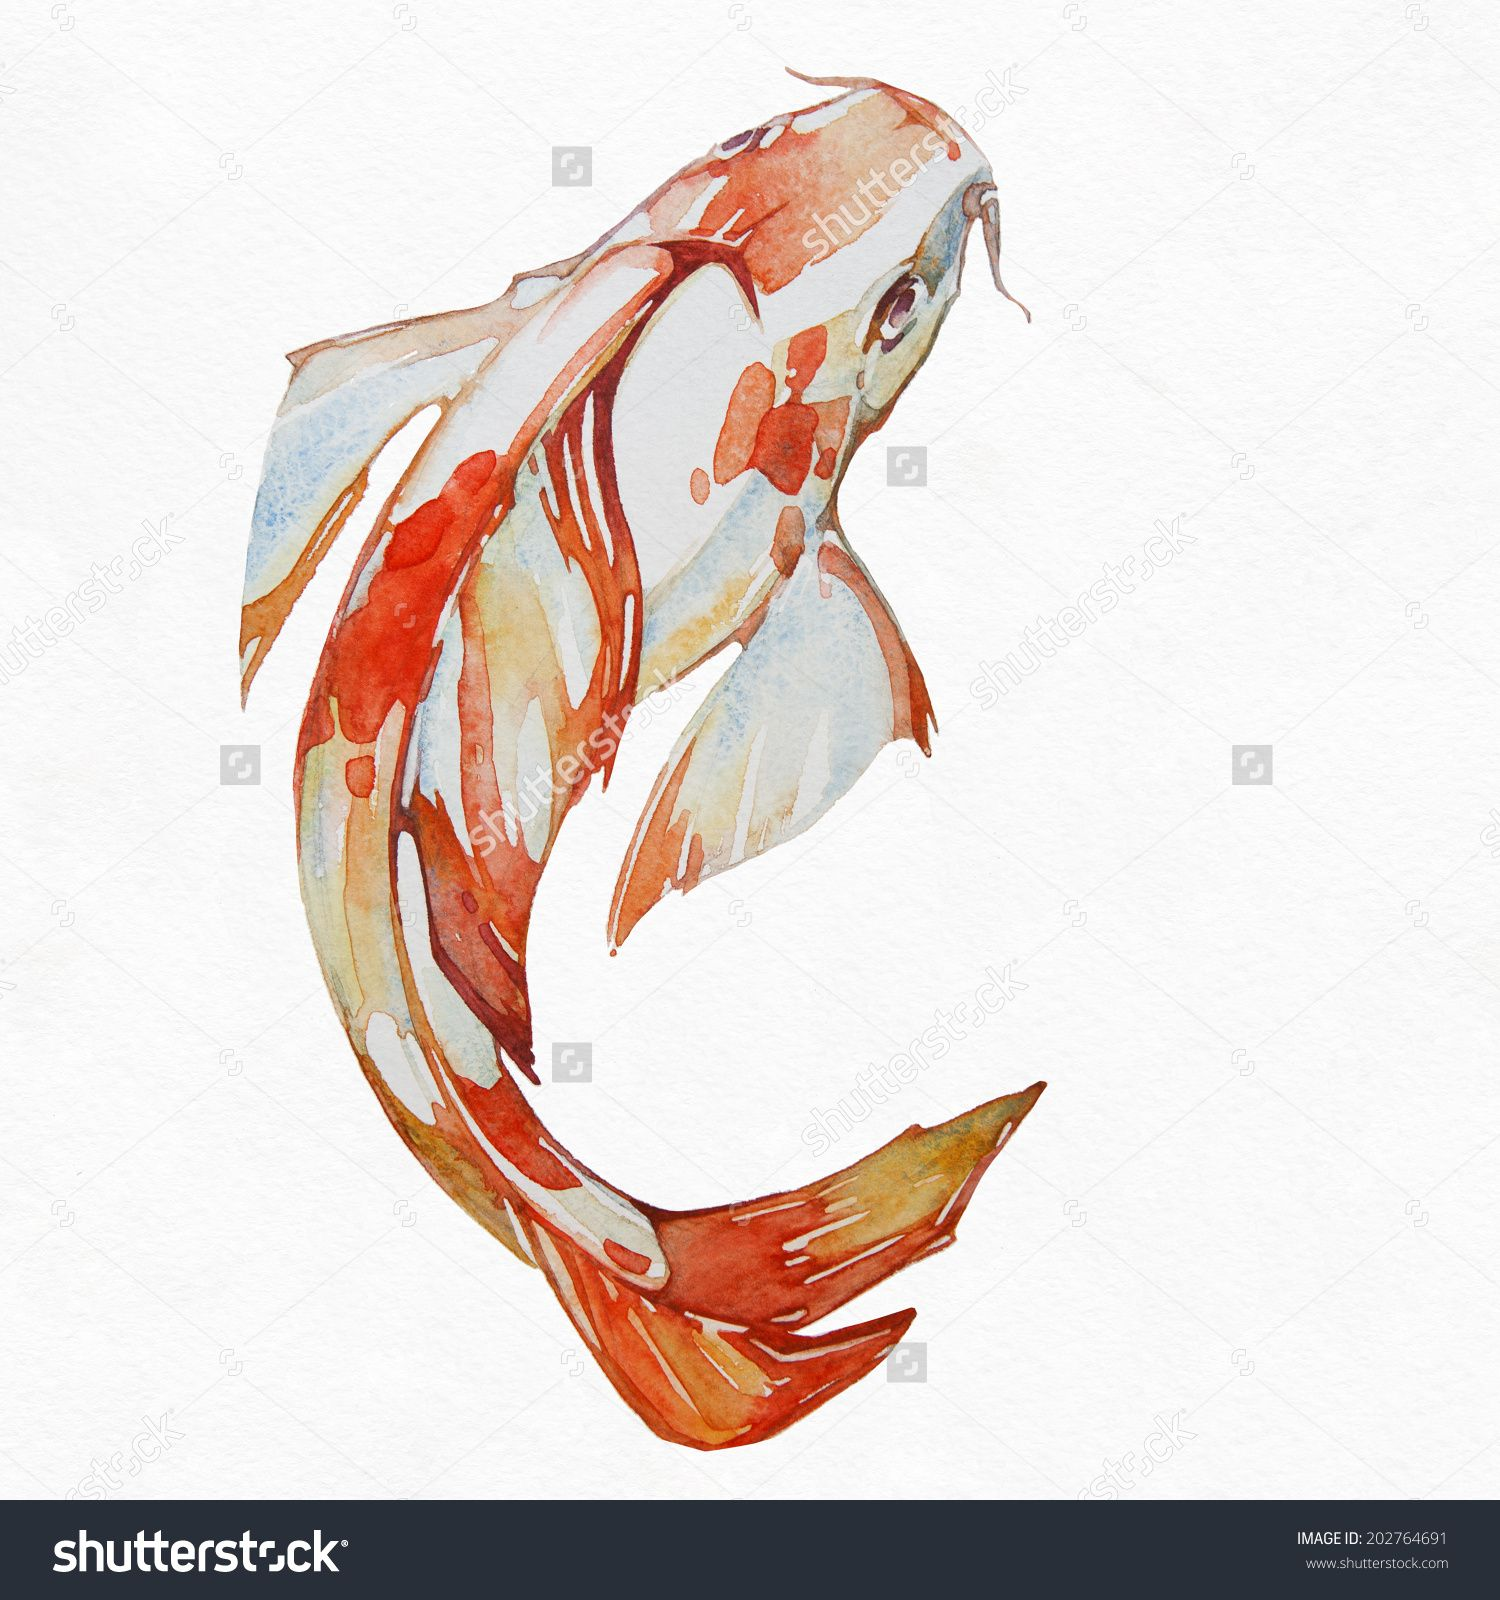 Resultado de imagen de koi fish watercolor koi fish for Koi goldfisch